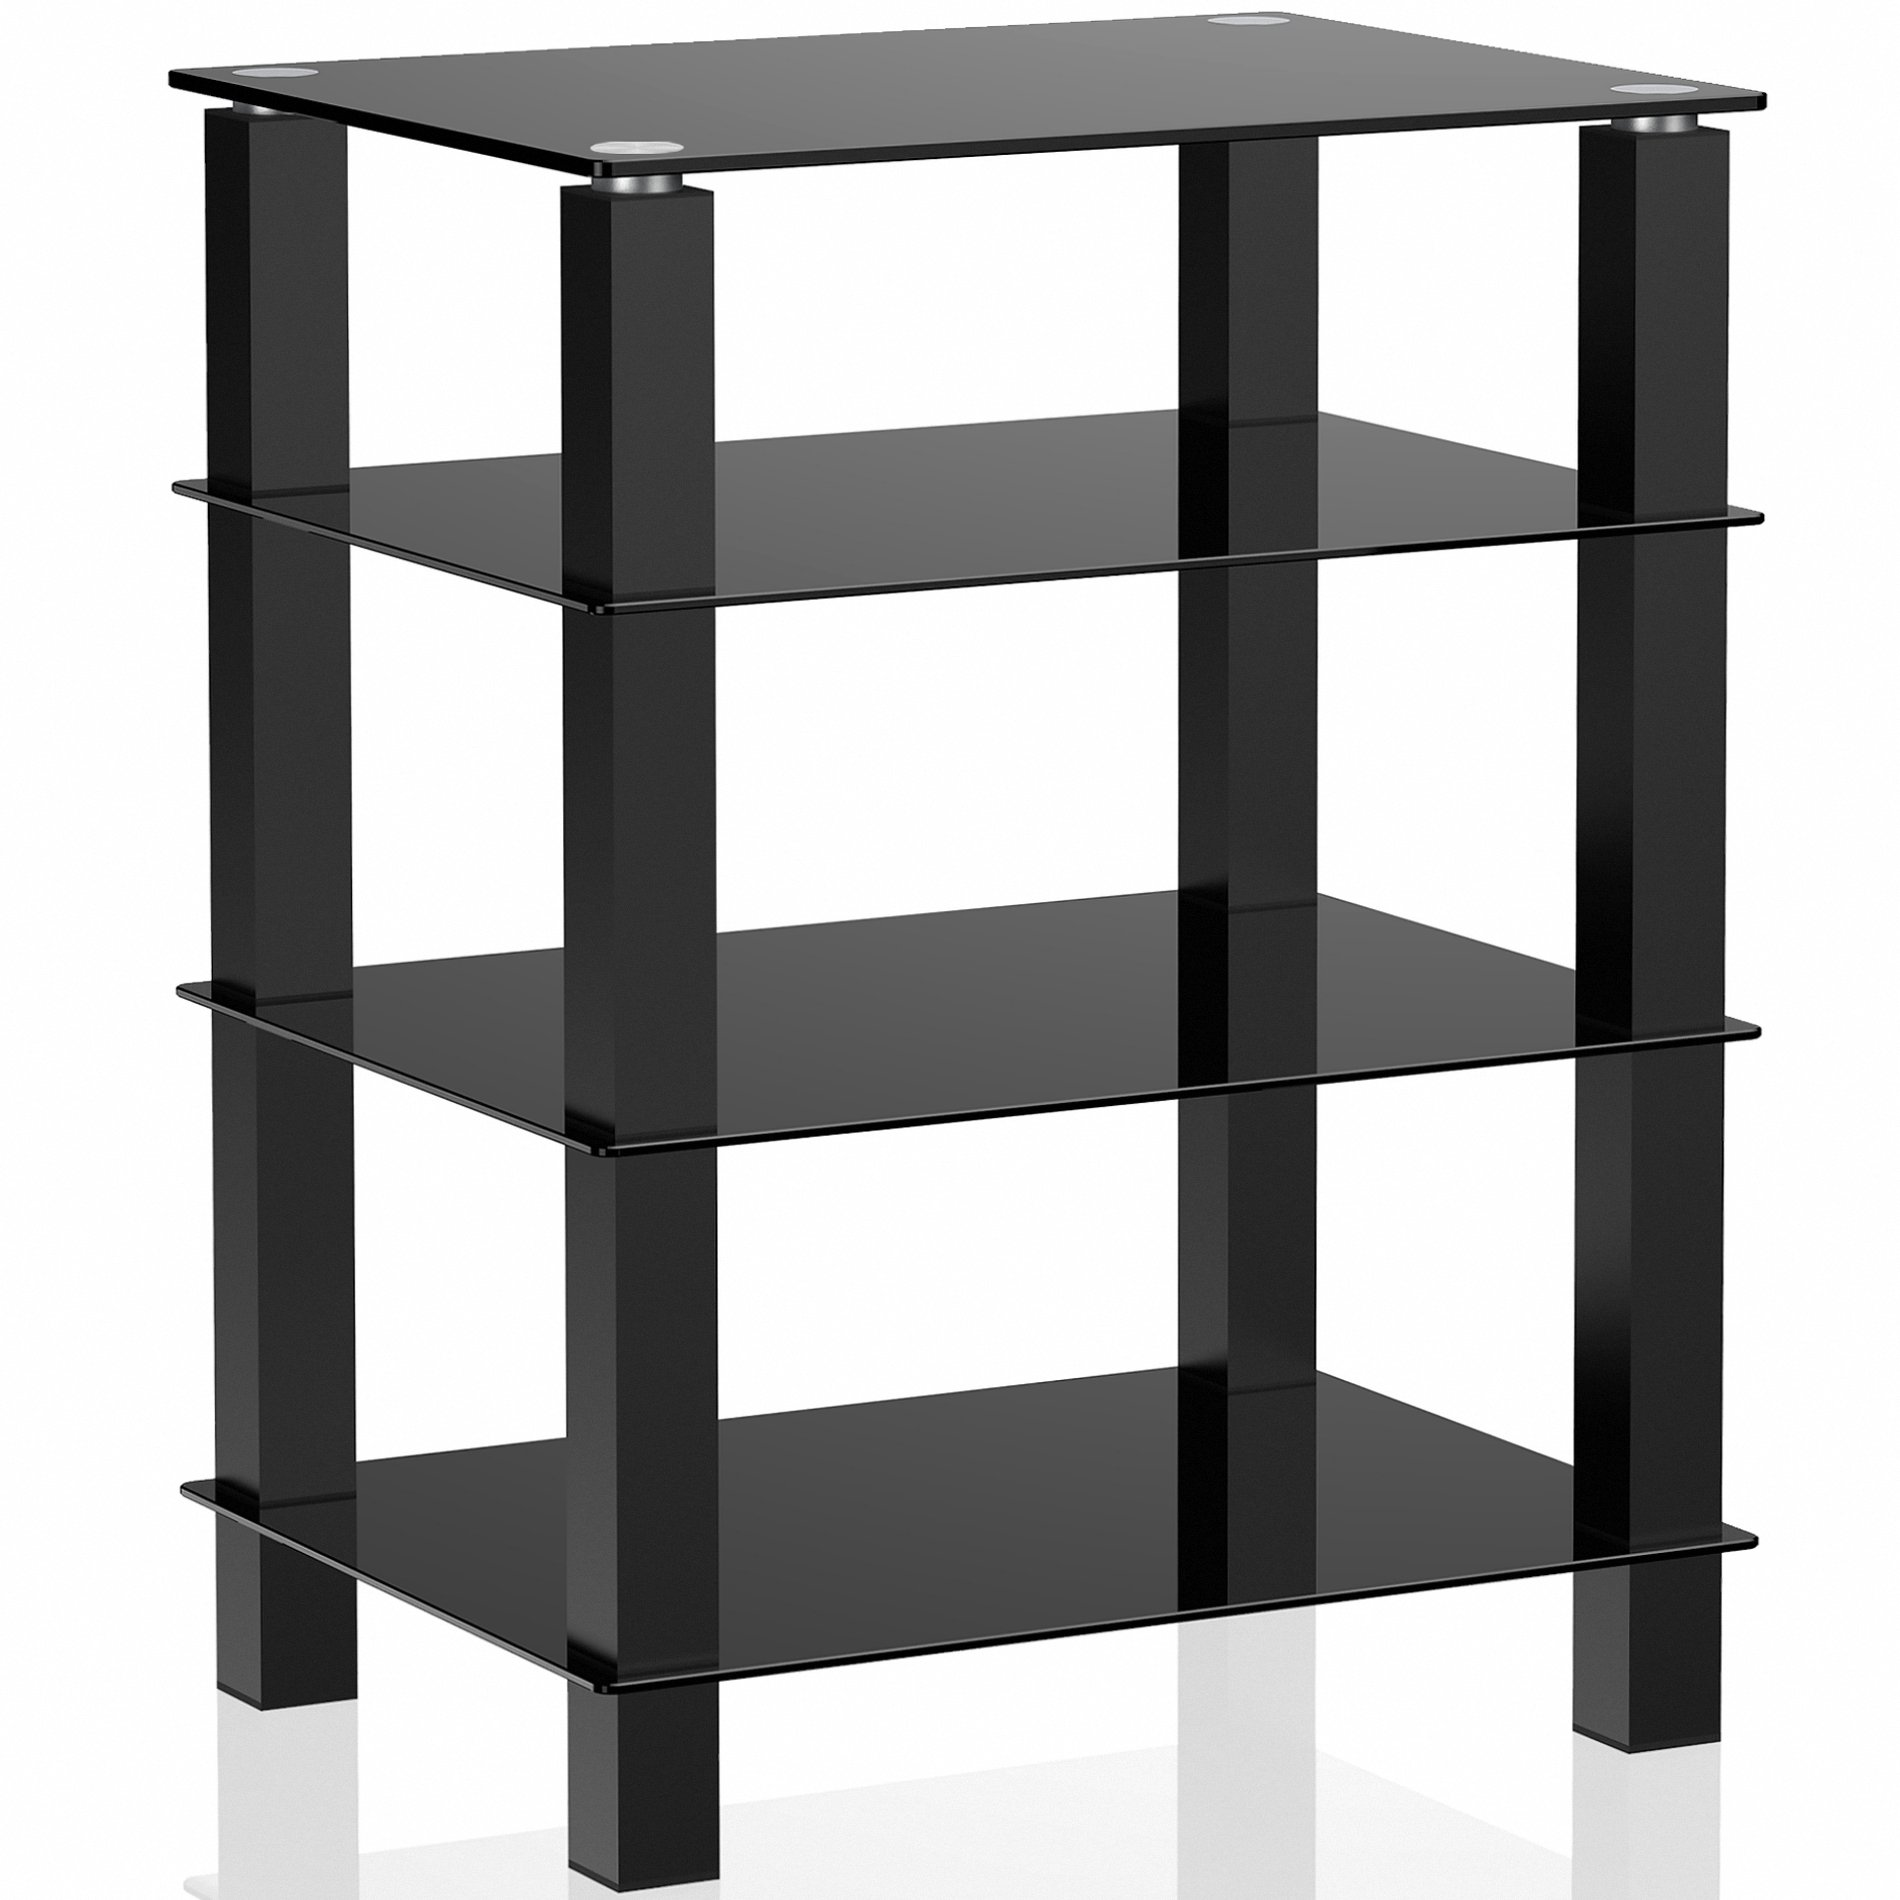 Exceptionnel FITUEYES 4 Tier Media Component Stand Audio Cabinet With Glass Shelf For  /Apple Tv